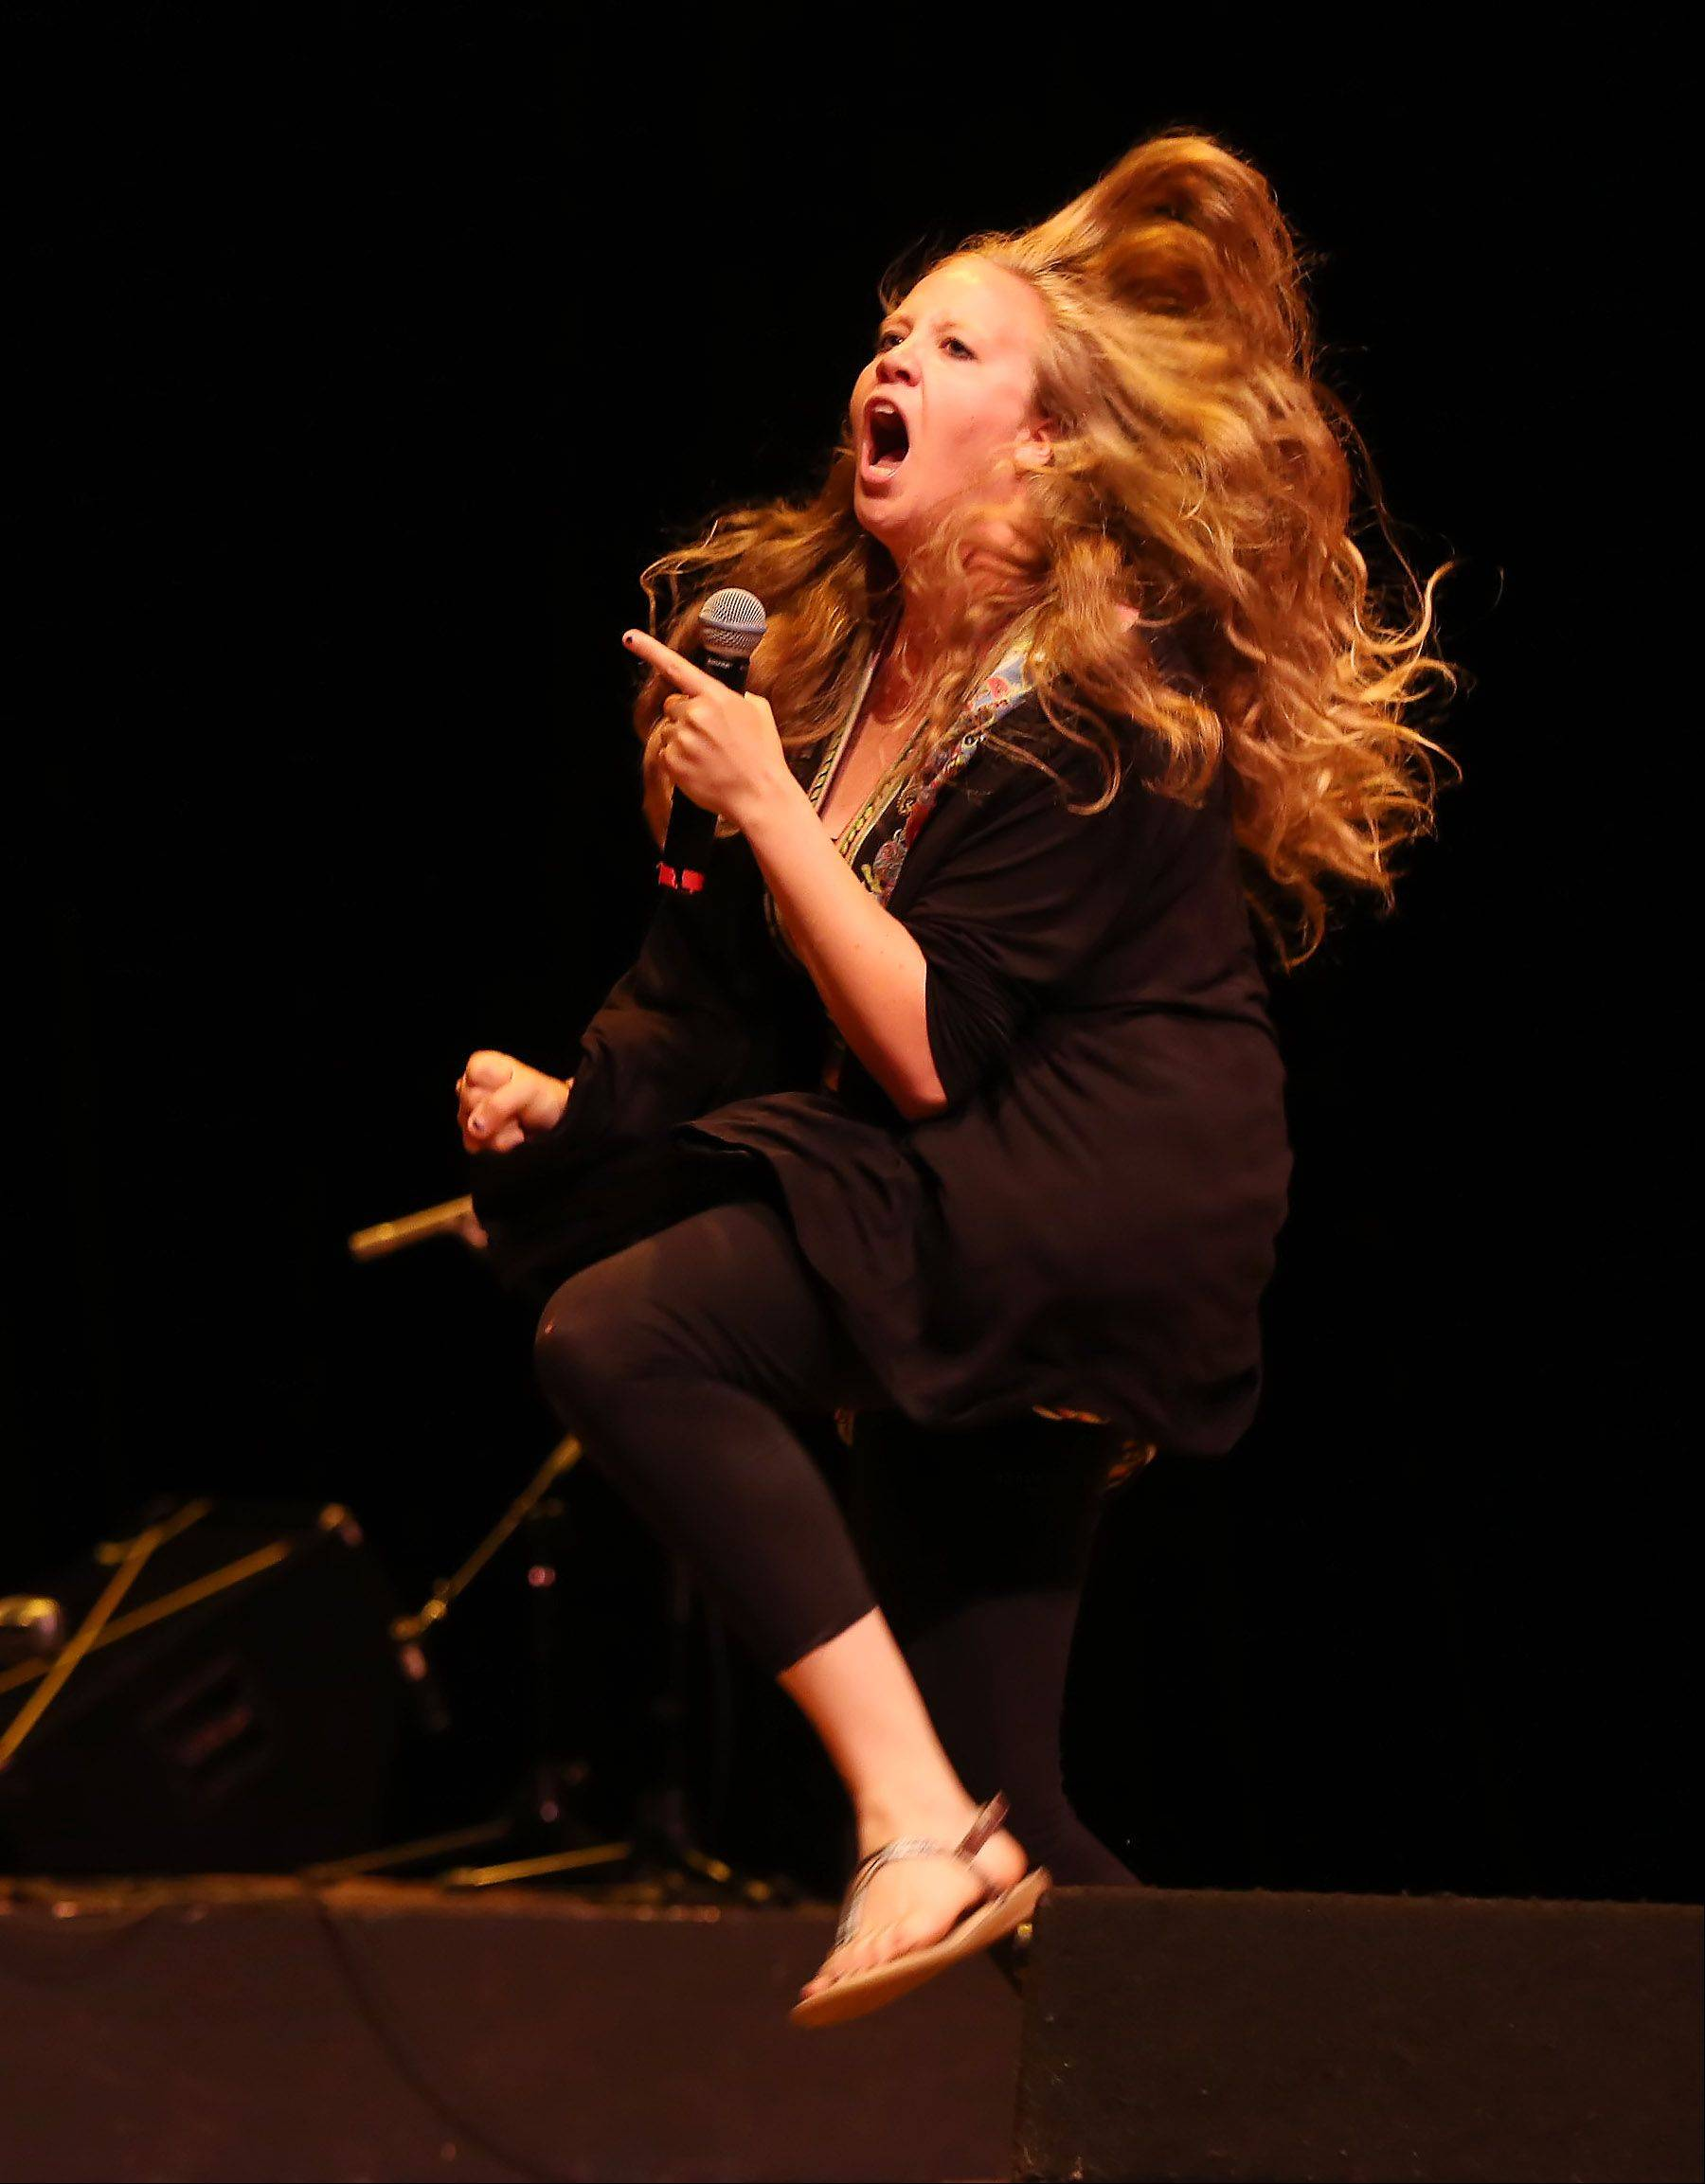 Comedian Tiffany Streng of Arlington Heights performs Sunday during the second round of performances by finalists of the Suburban Chicago's Got Talent competition at the Metropolis Performing Arts Centre in Arlington Heights. The summer long talent contest is presented by the Daily Herald and sponsored by the Arlington Heights Chamber of Commerce.